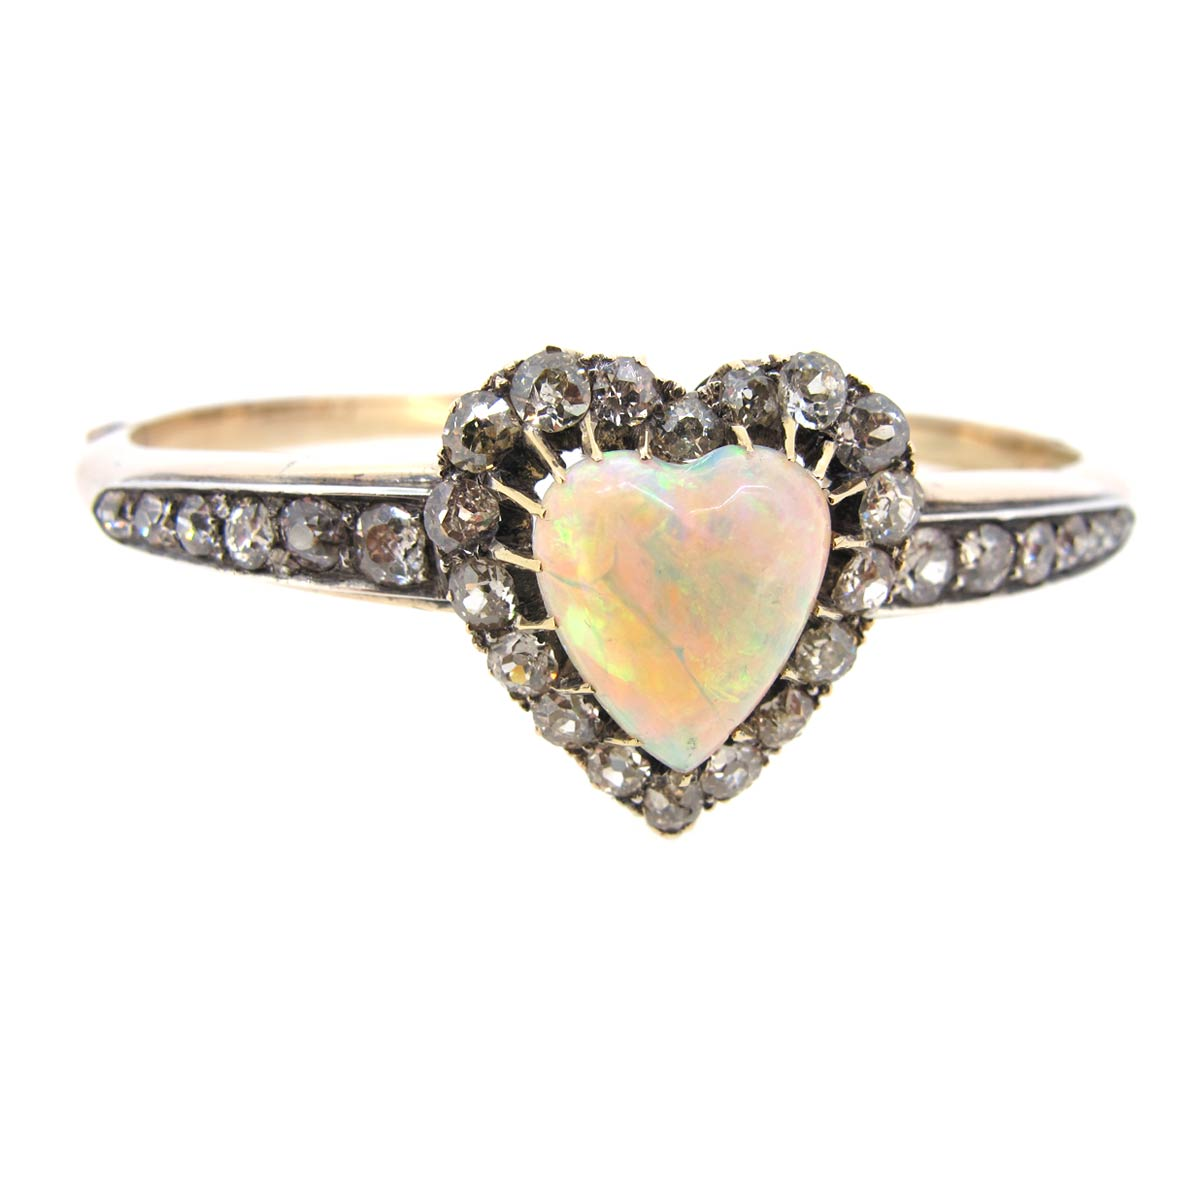 Opal & Diamond Heart Bangle